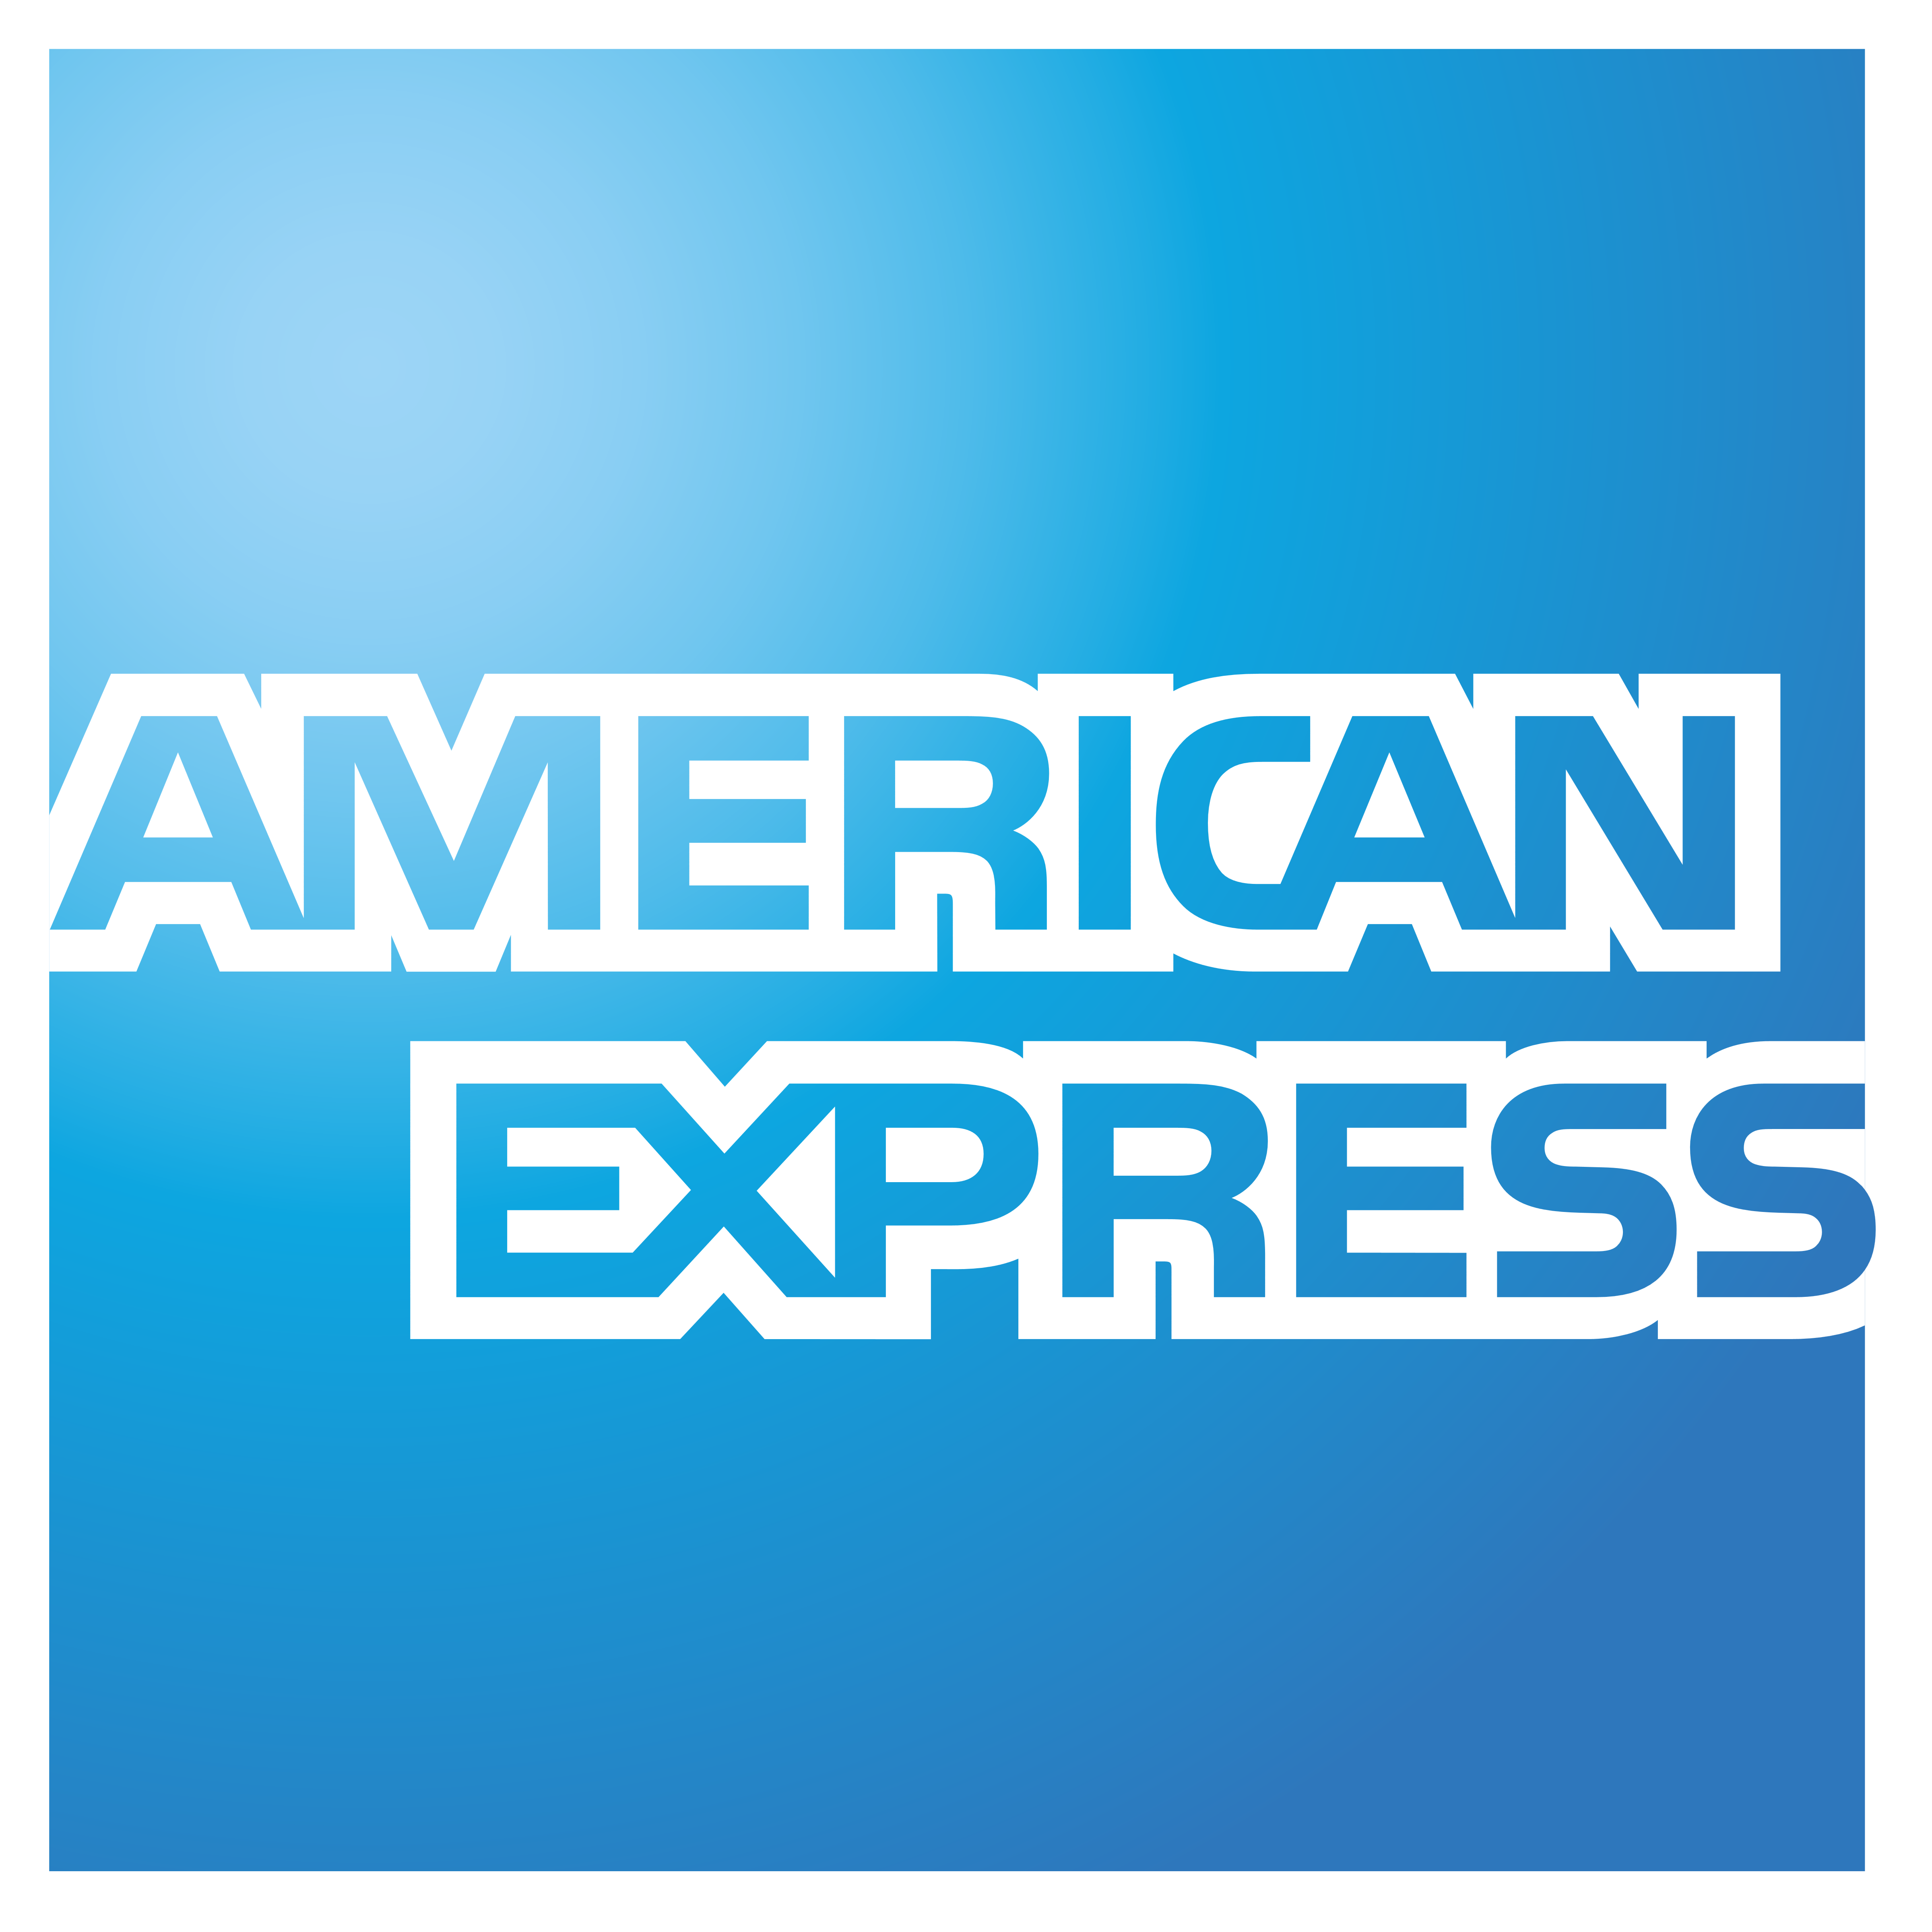 american express logos download Wells Fargo Stagecoach Logo Wells Fargo Old Logo